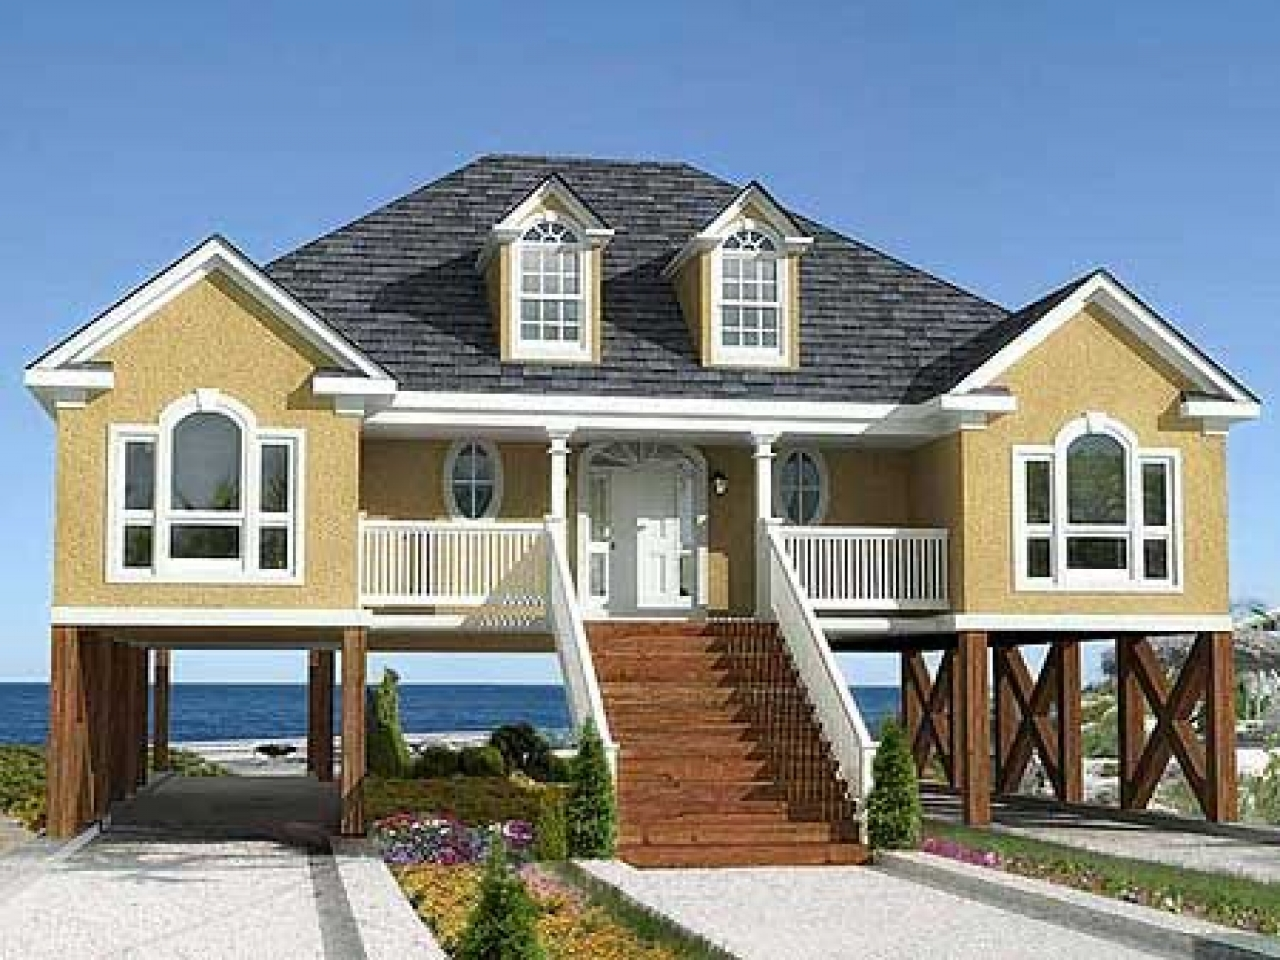 Cape cod beach house low country beach house plans for Elevated beach house designs